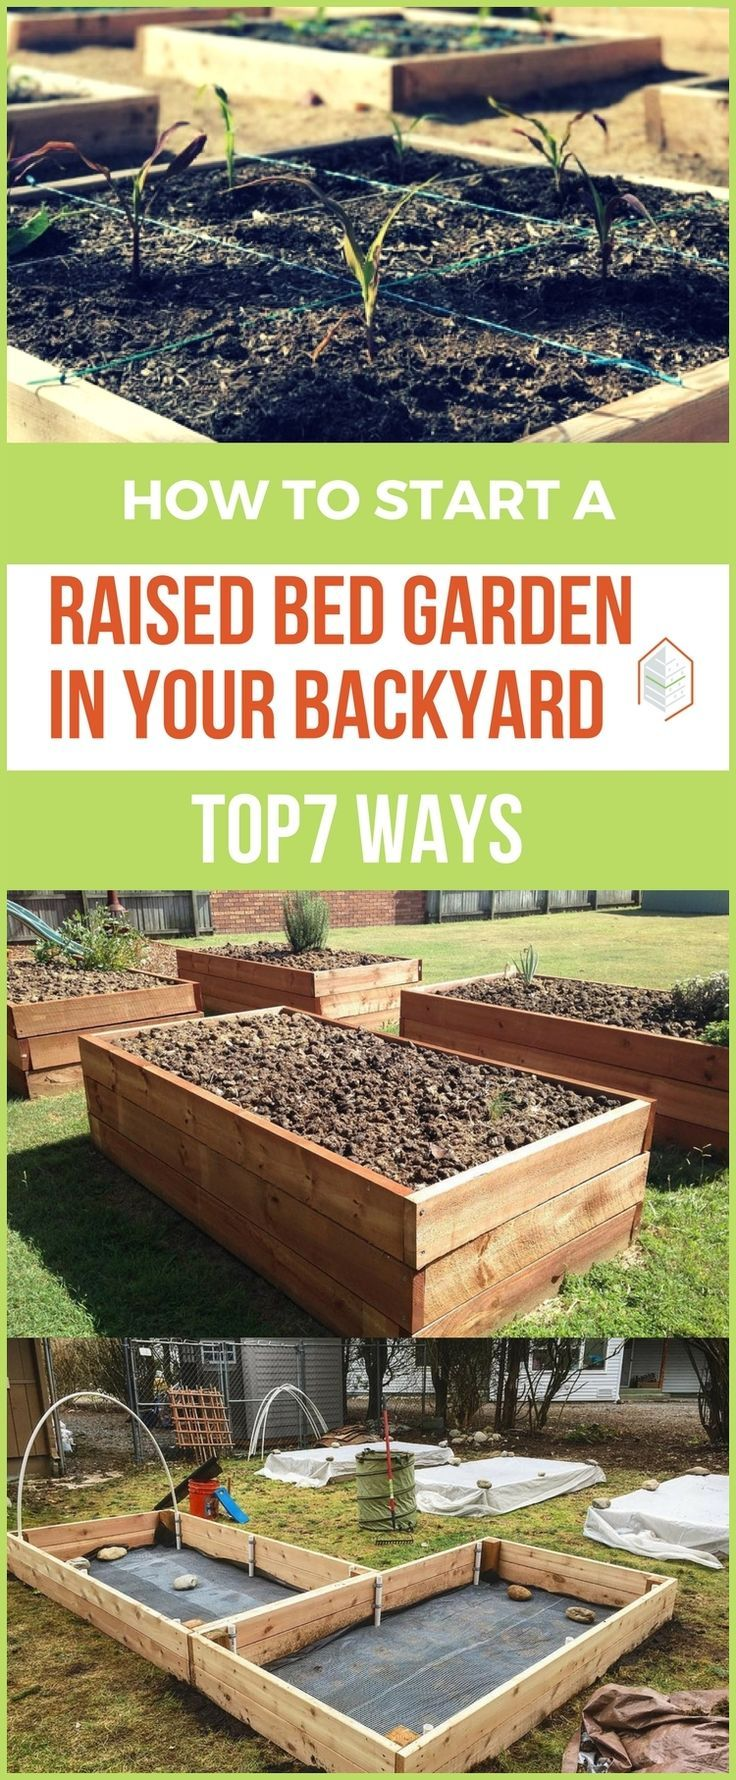 how to start a raised bed garden in your backyard top 7 ways